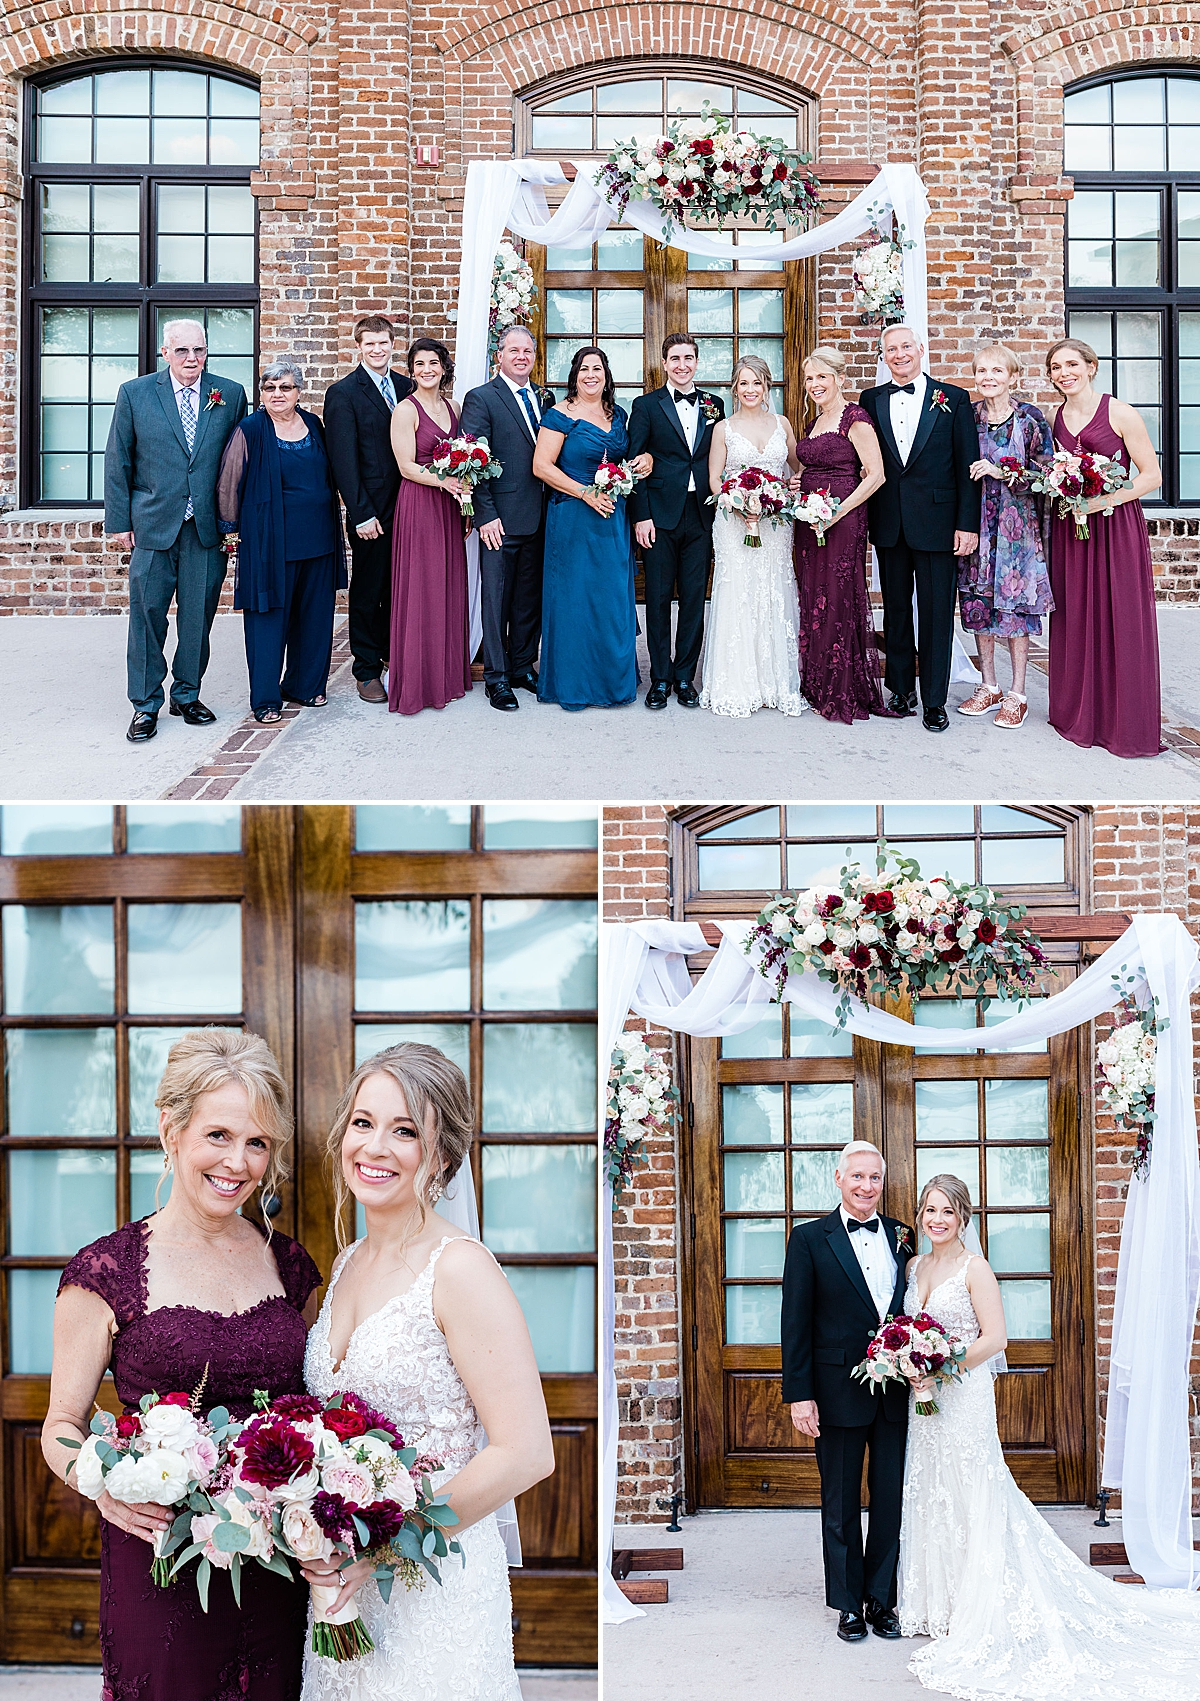 Family portraits for Kate and Anthony's Charles H Morris Center Wedding in Savannah